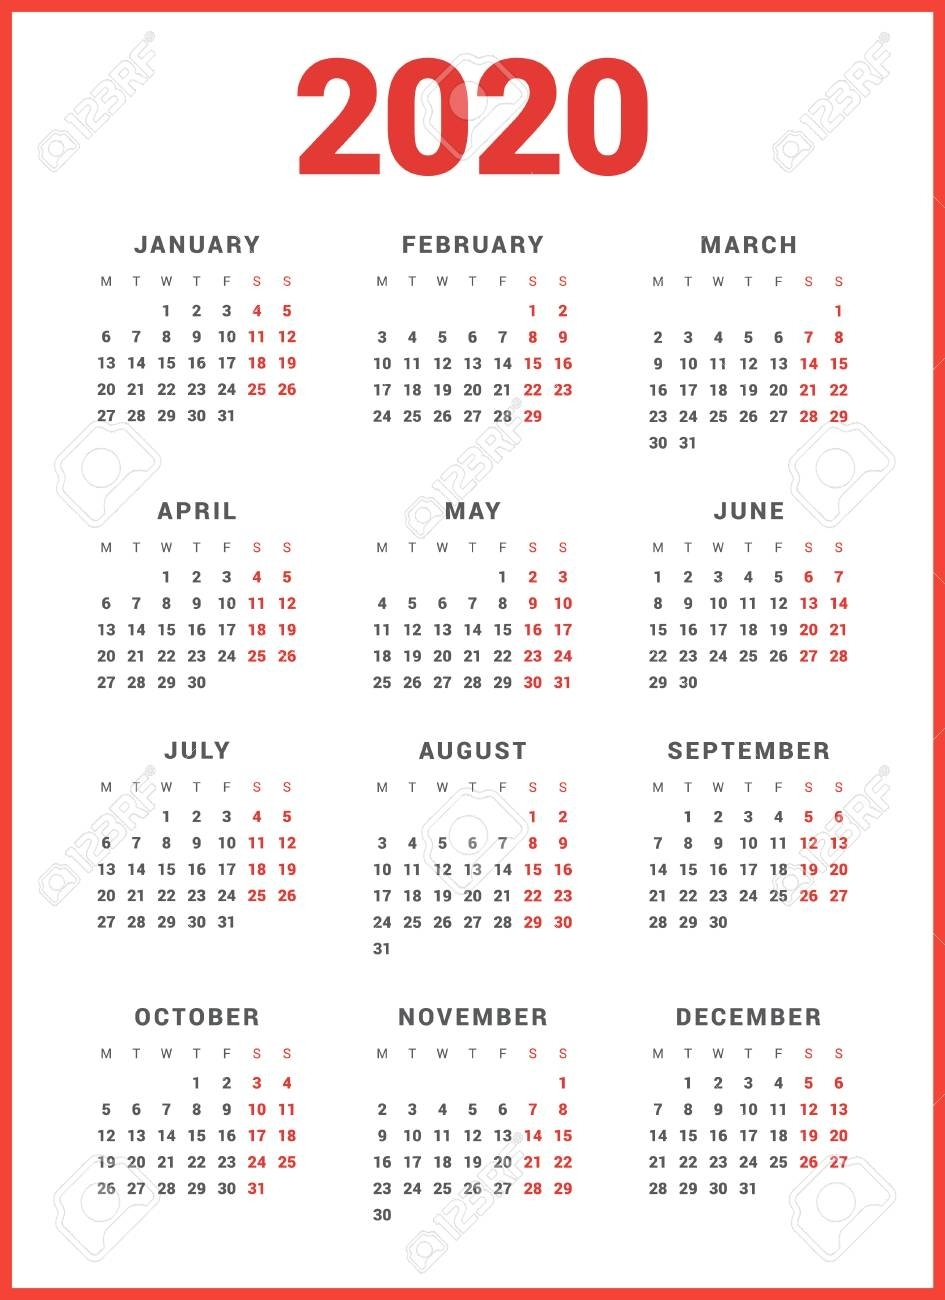 Calendar For 2020 Year On White Background. Week Starts Monday